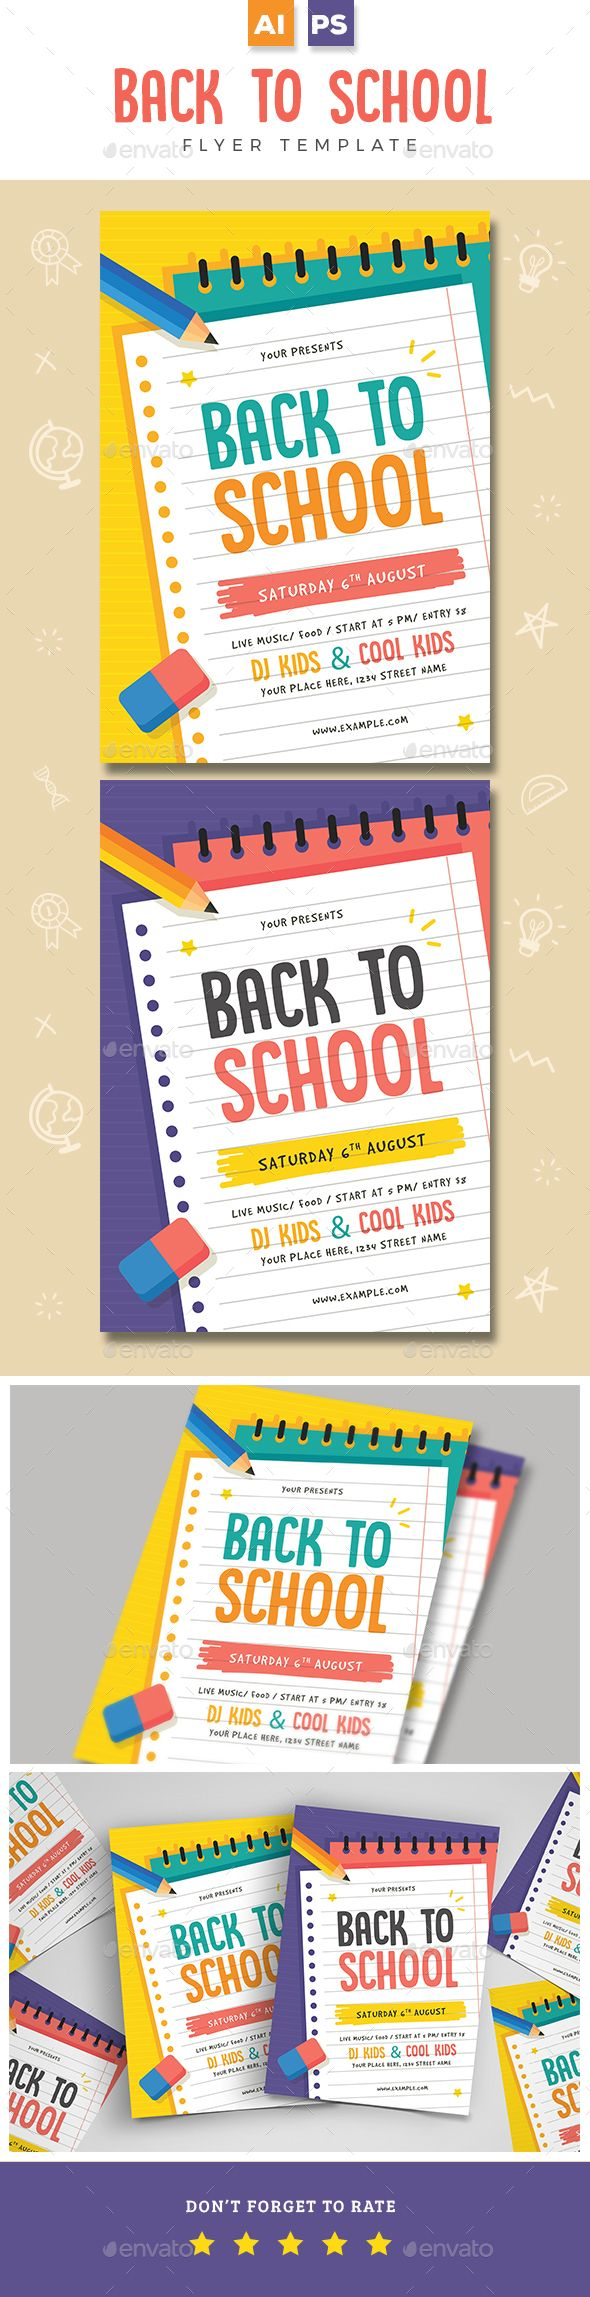 Back To School Flyer | School, Flyer template and Event flyers